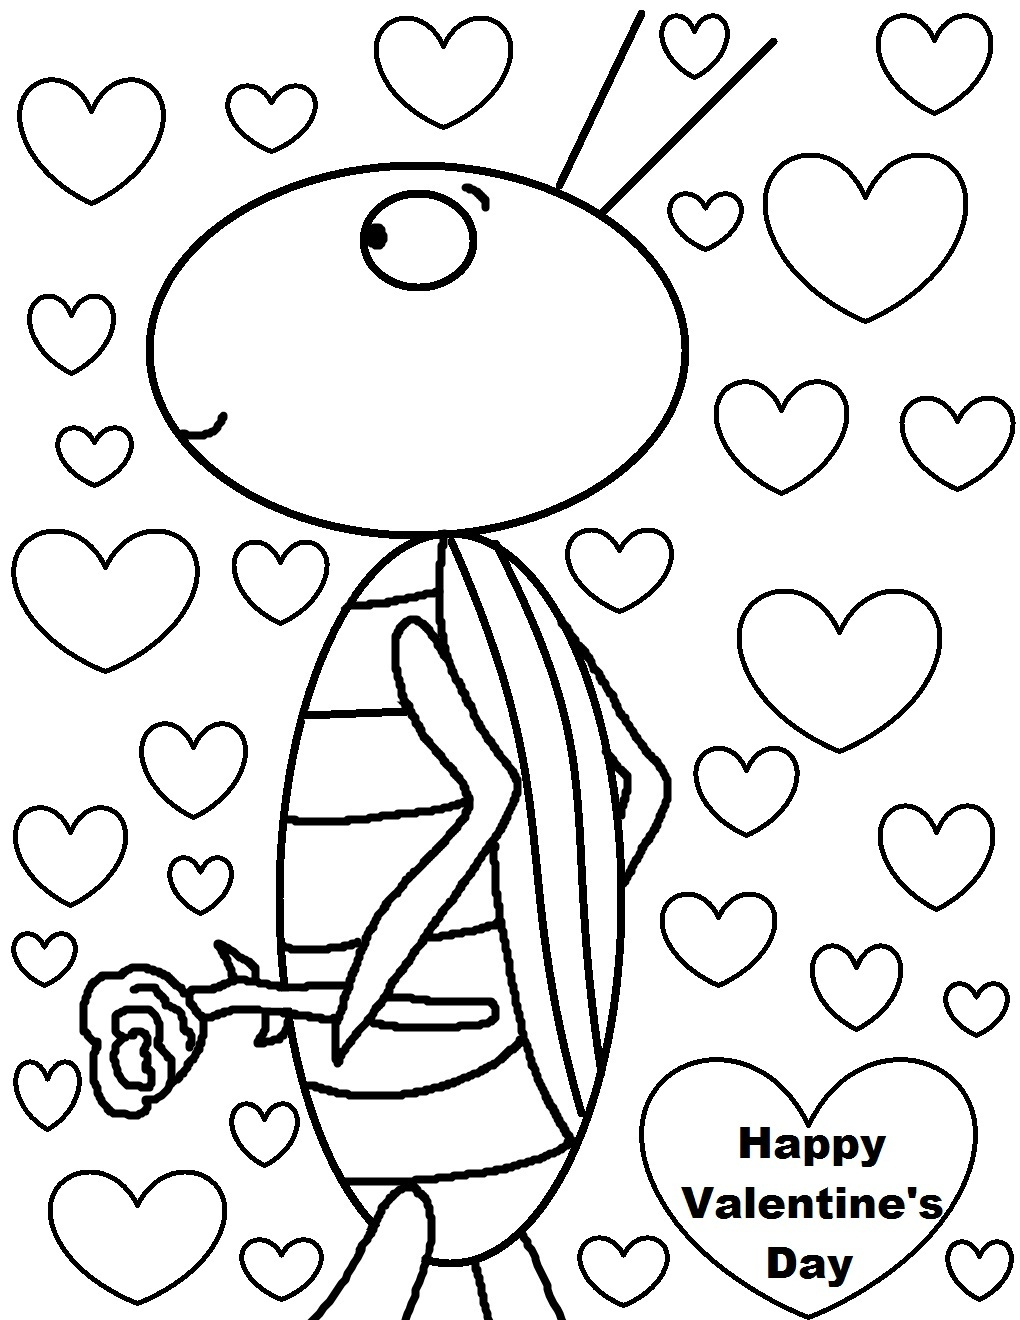 happy valentines day clipart to color Clipground